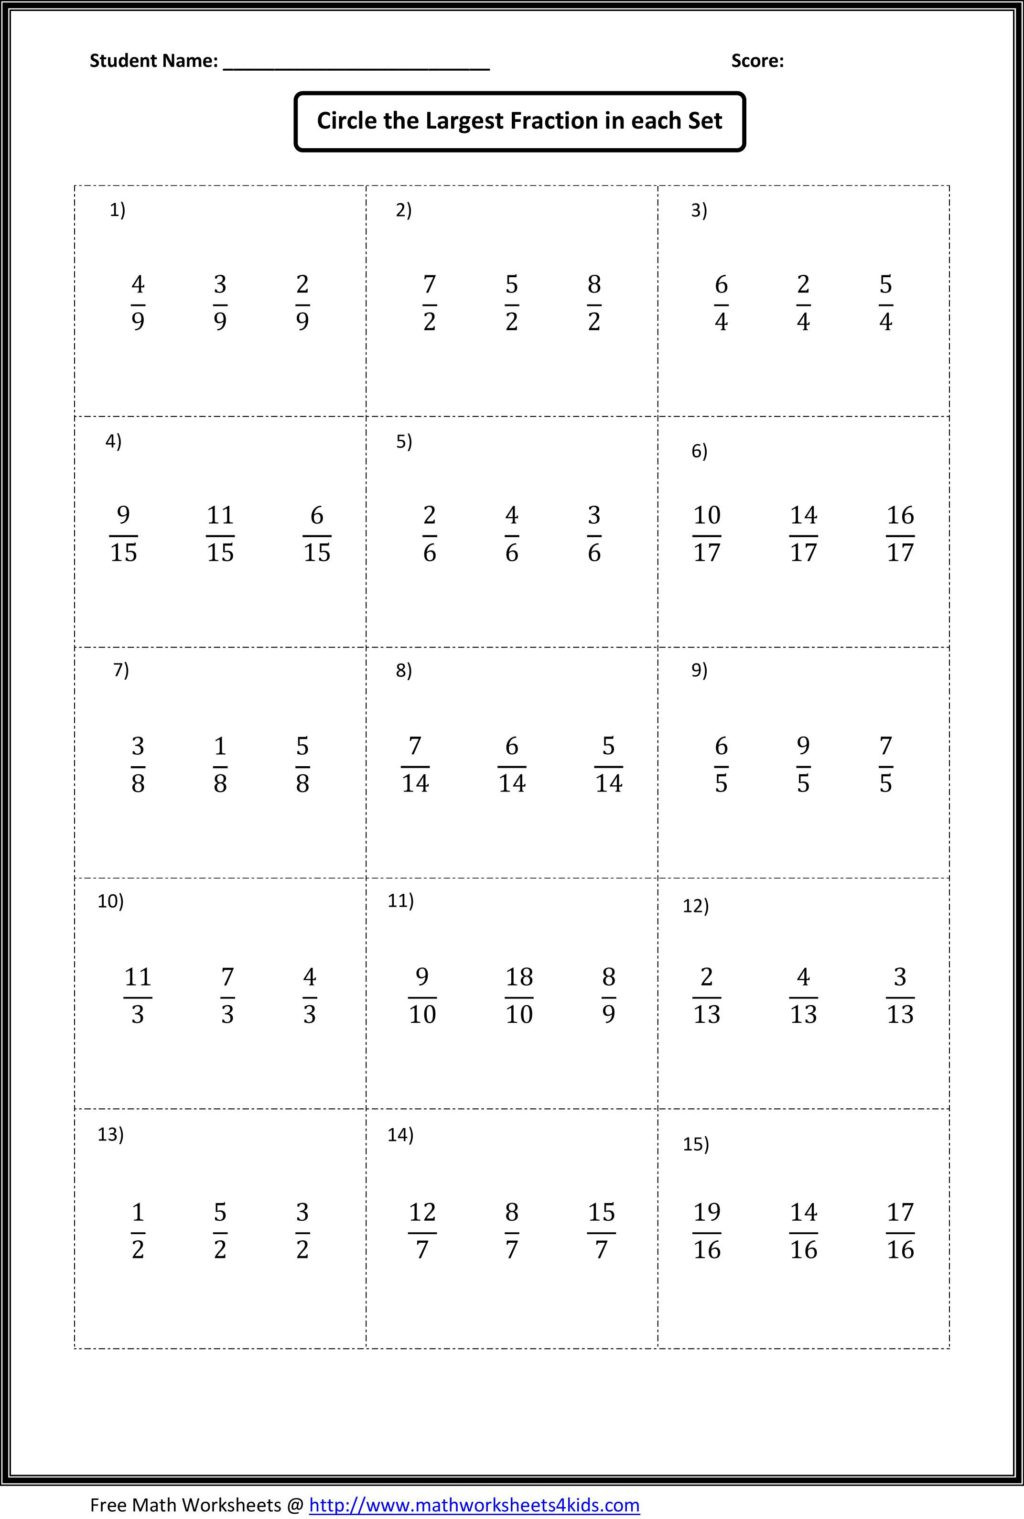 Decomposing Fractions Worksheets 4th Grade Worksheet Worksheet Paring Fractions Worksheets Find